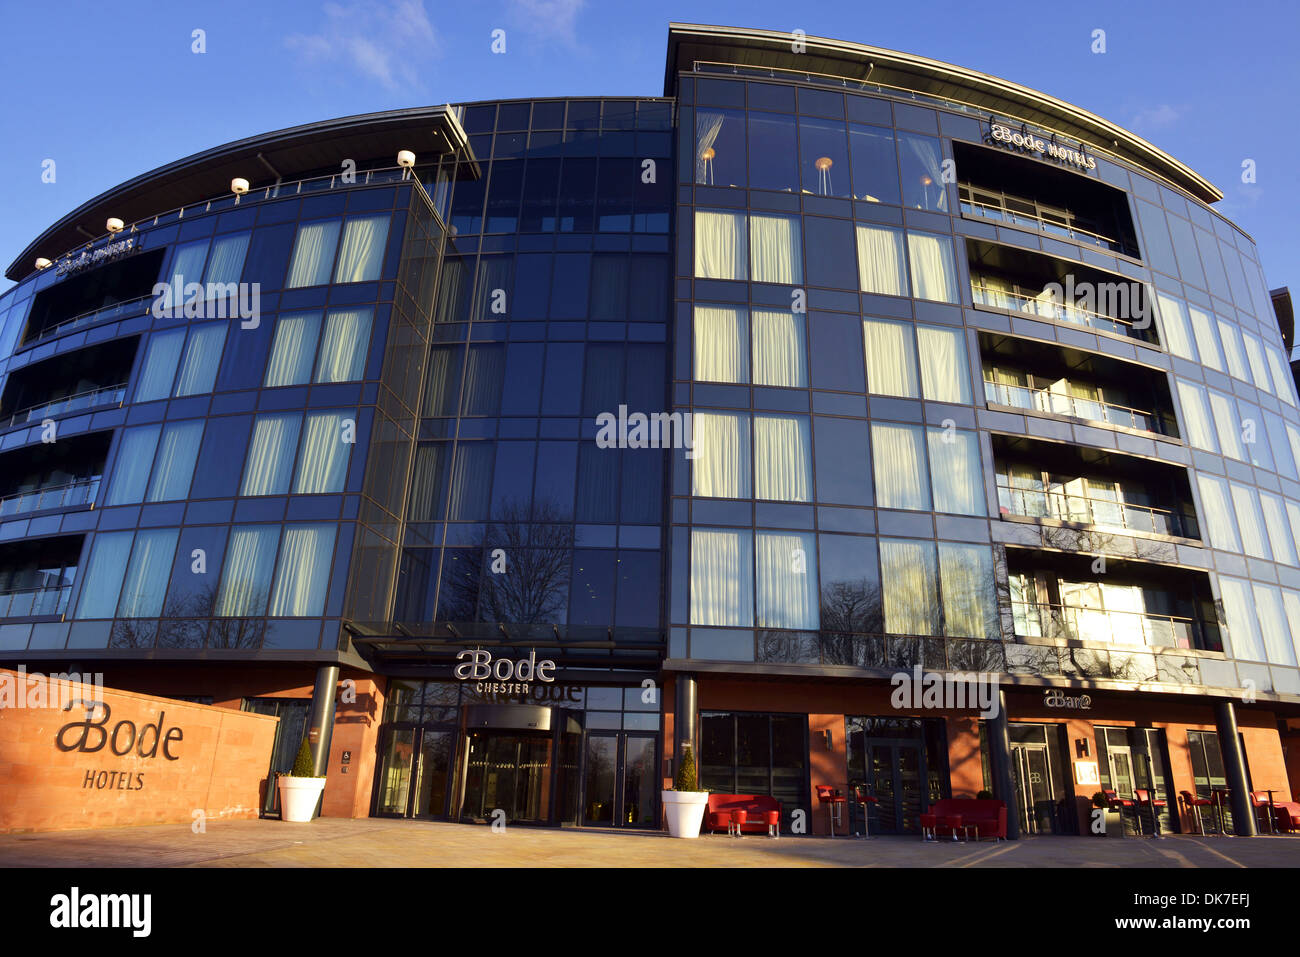 Abode Hotel. The Cheshire Abode Hotel, The city of Chester, Cheshire, Britain, UK - Stock Image